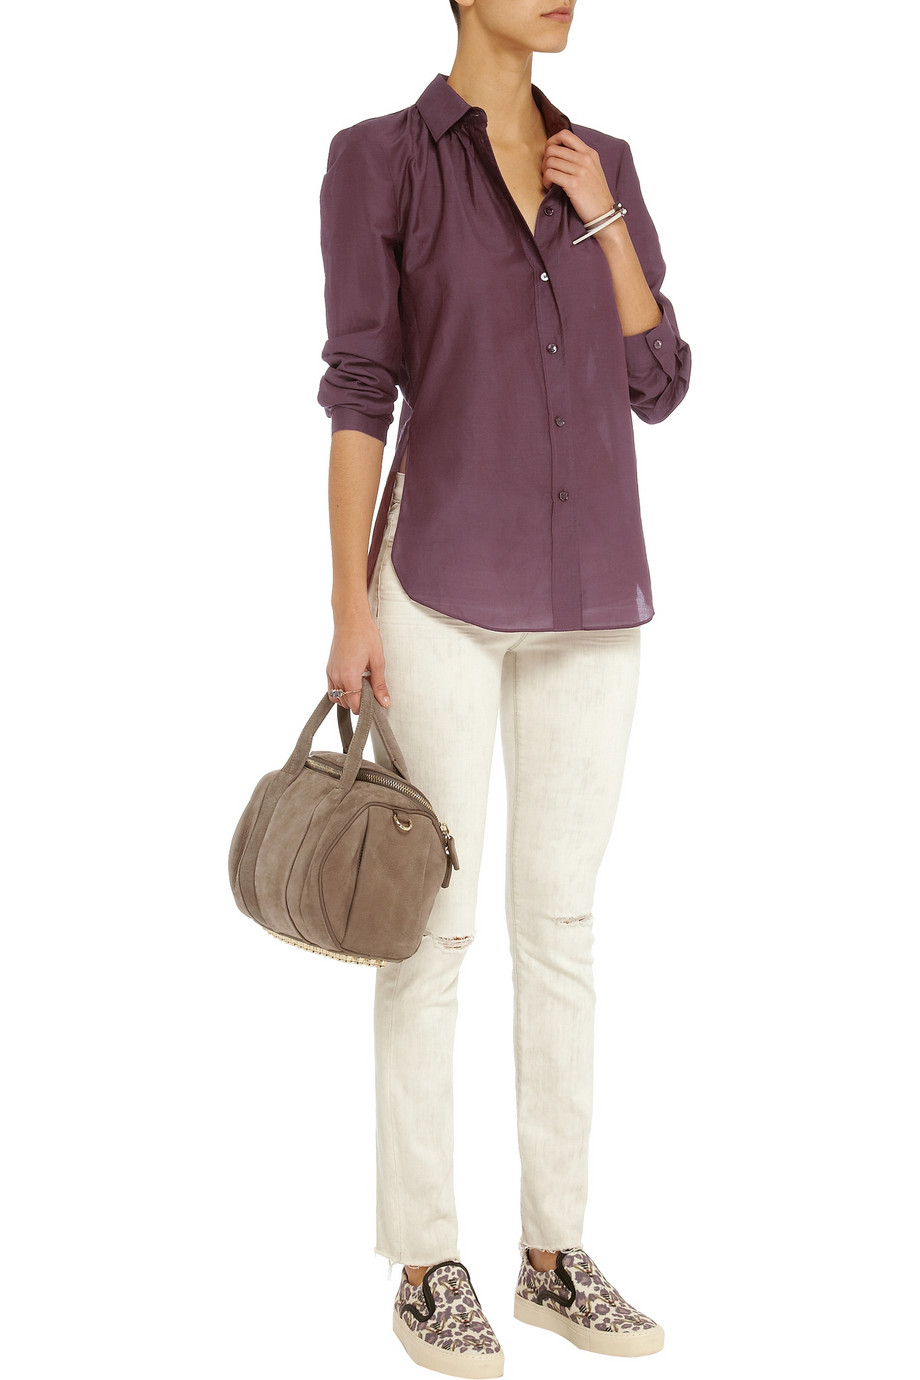 Acne Studios Adeline cotton and silk-blend shirt – 65% at THE OUTNET.COM